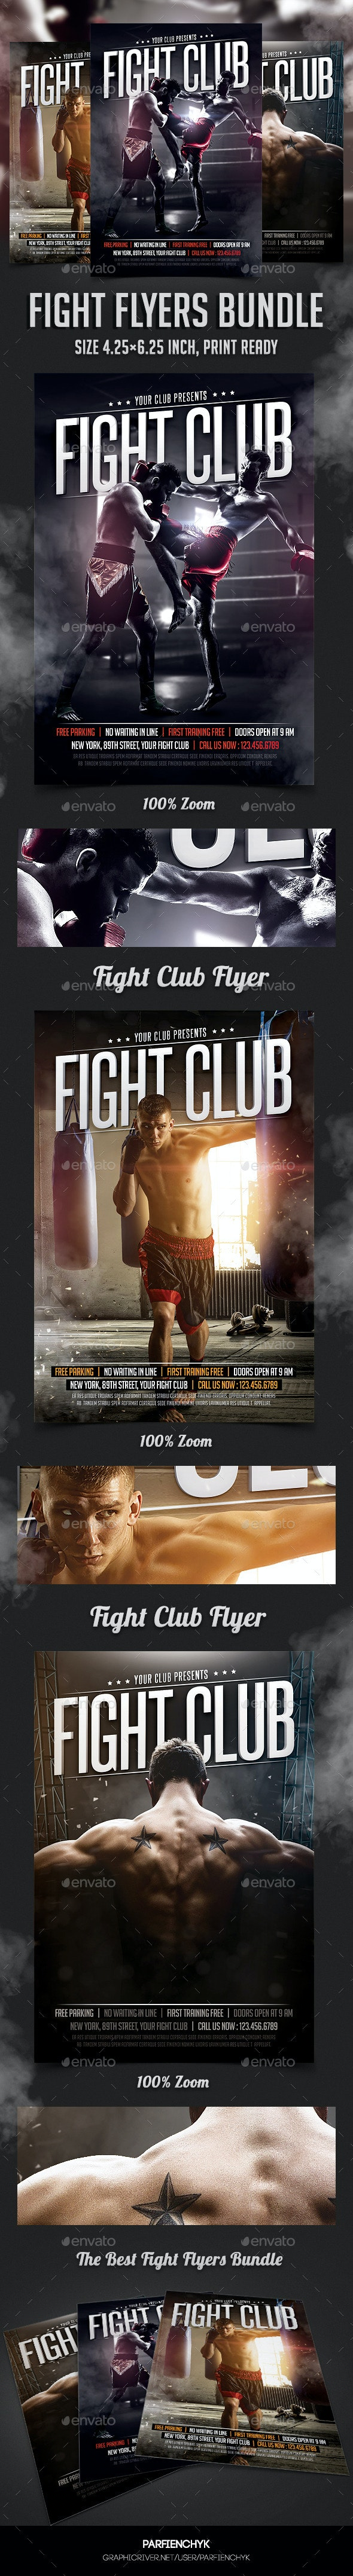 Fight Club Flyers Bundle - Sports Events